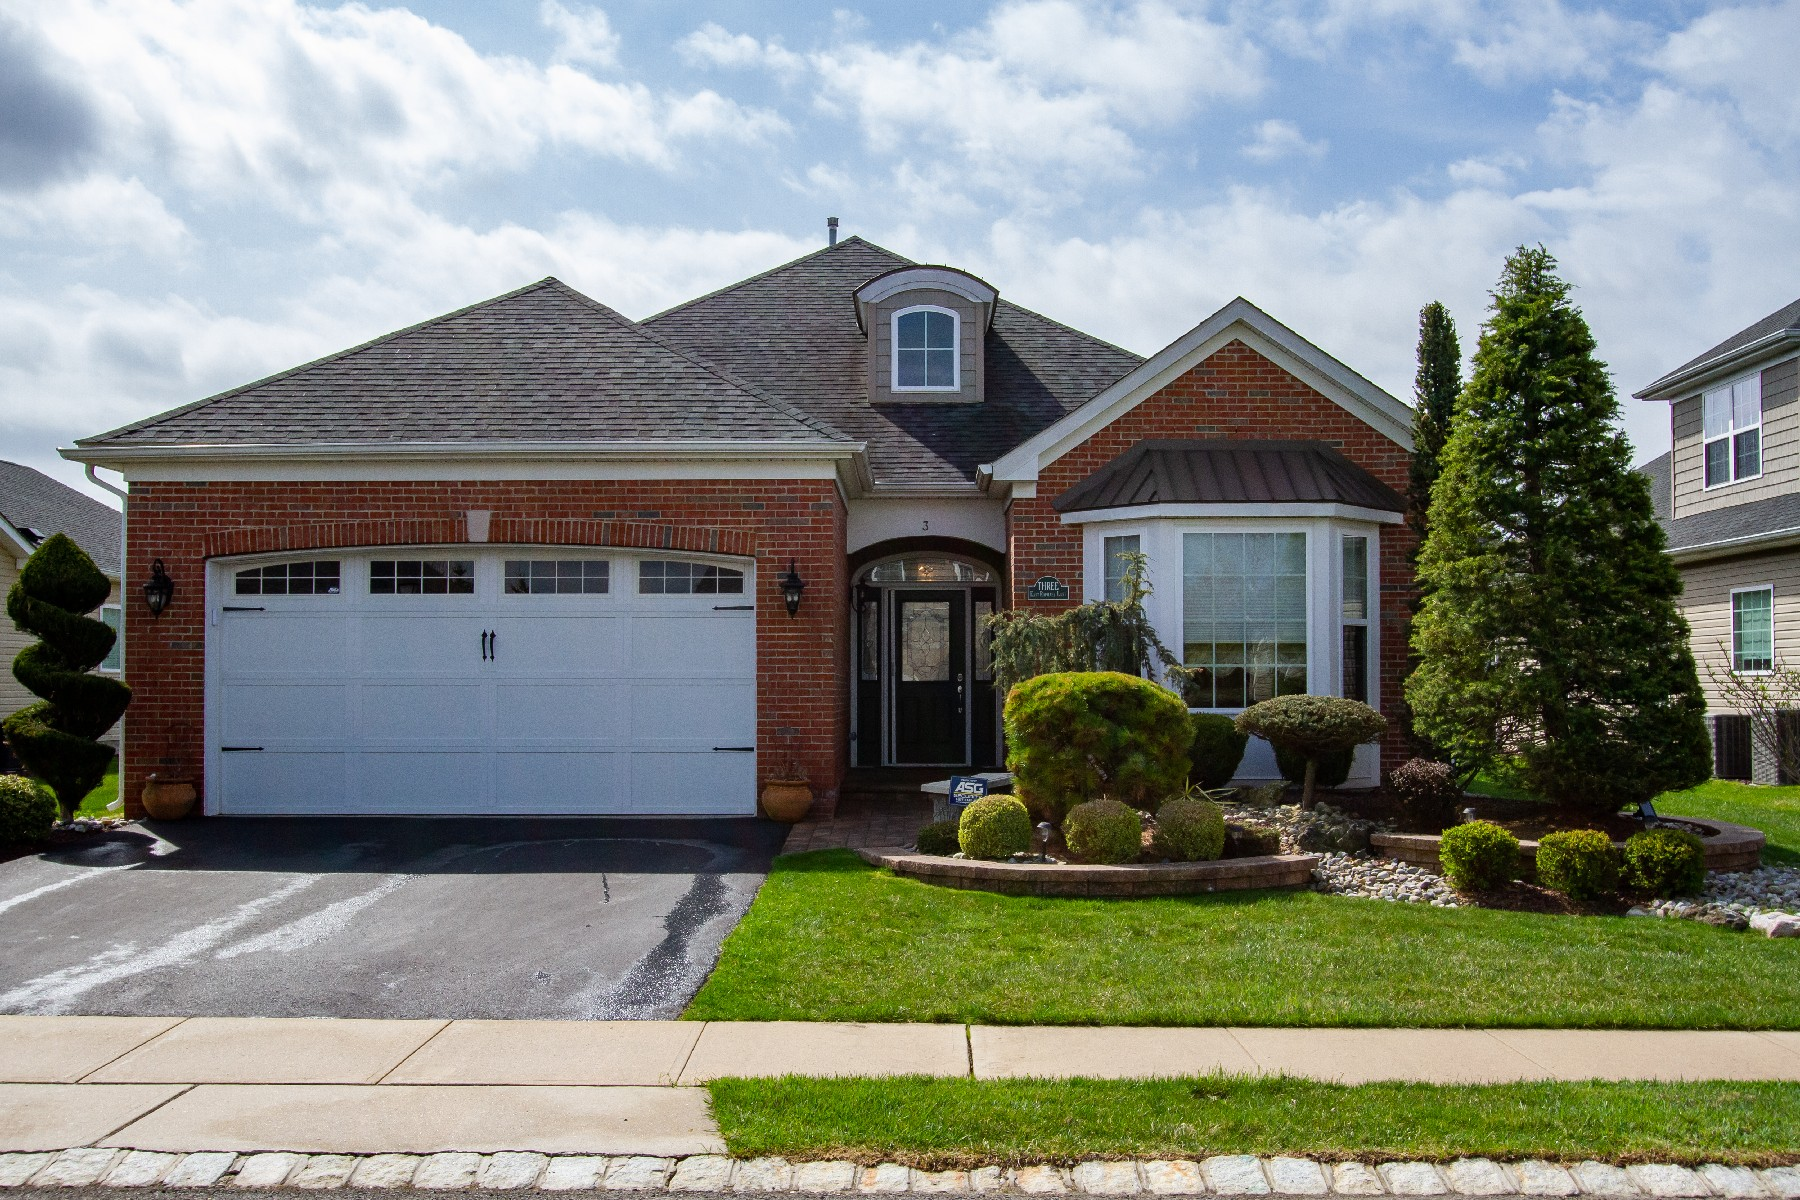 Single Family Home for Sale at Stunning Lassiter Model @ Equestra 3 E Raphael Ln, Howell, New Jersey 07727 United States